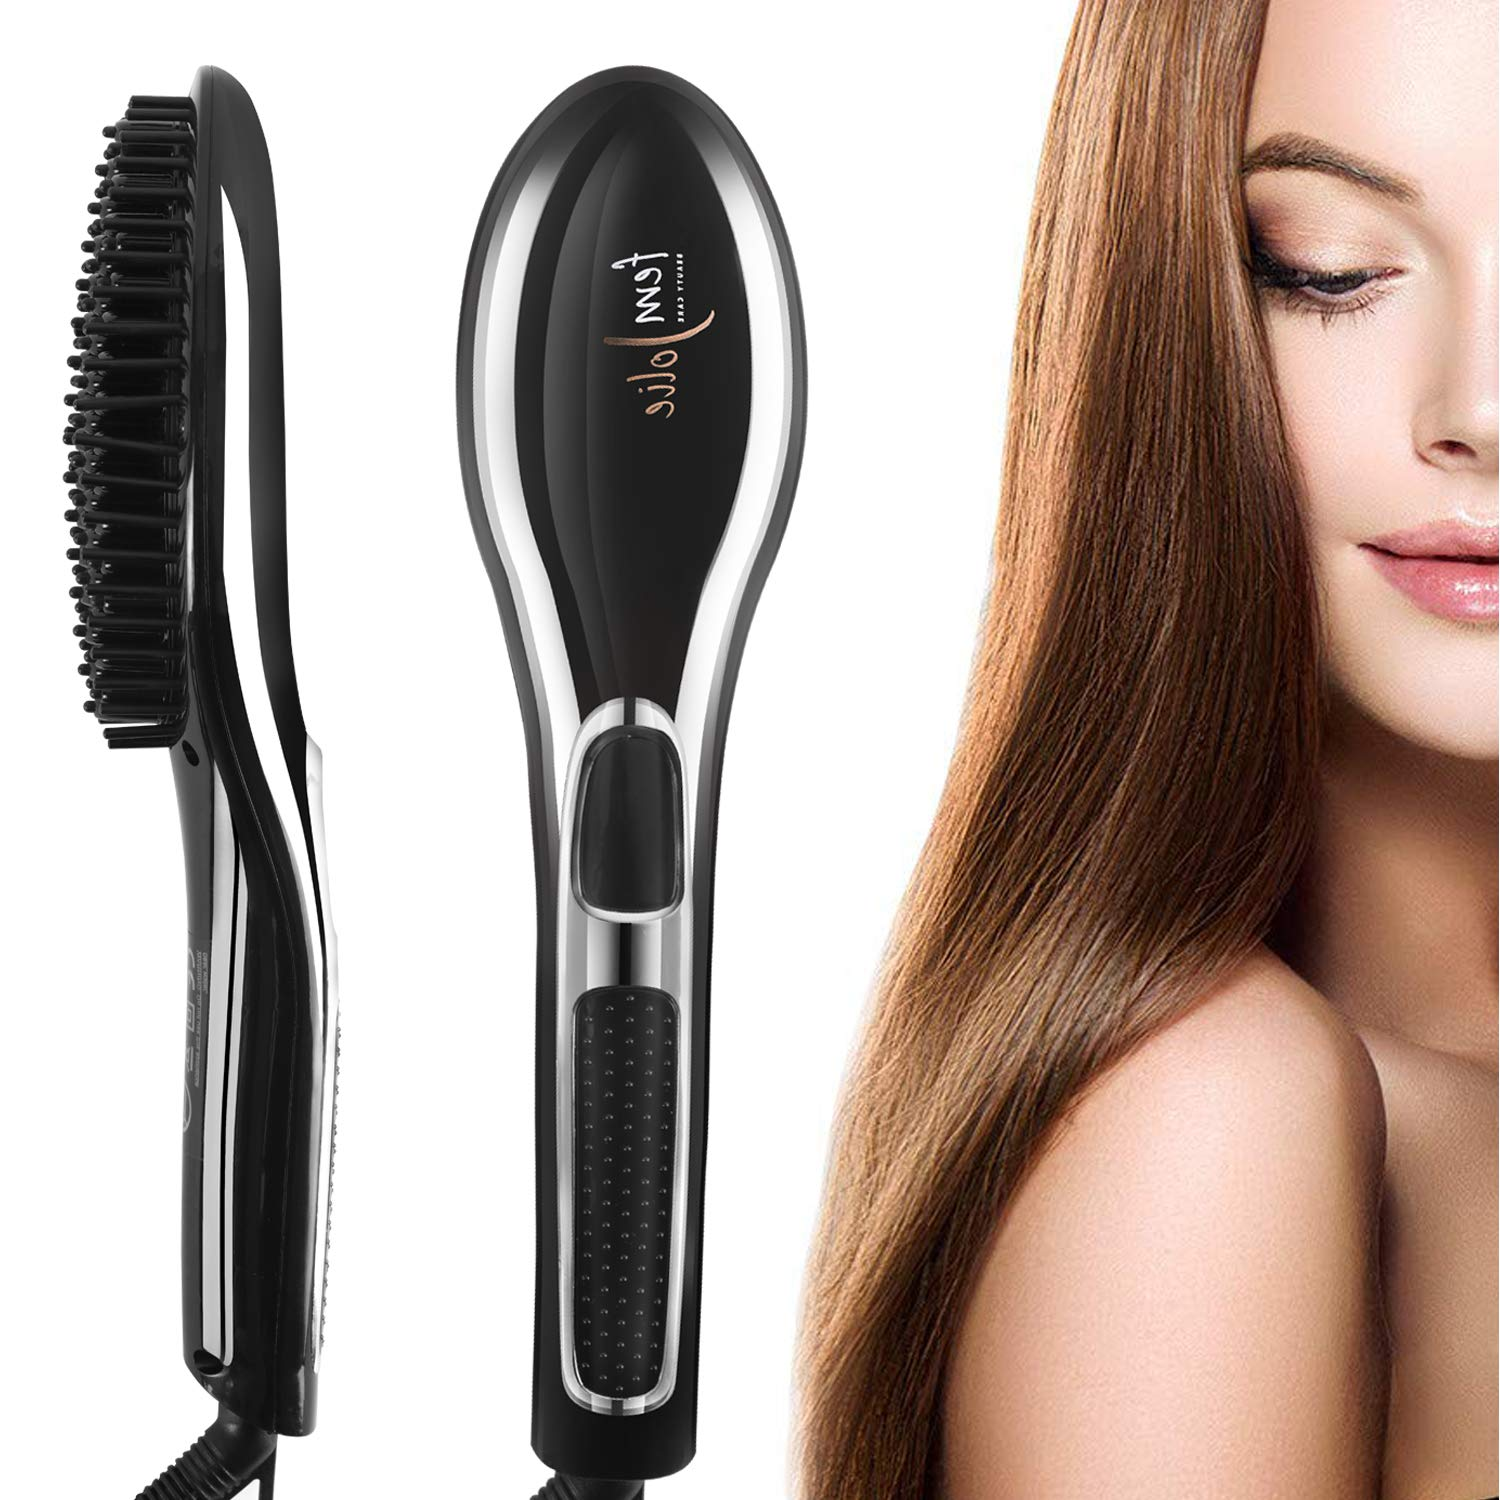 Pretafarver Hair Straightening Brush, Ionic Ceramic Straightener Hair Brush for All Kinds of Hair, Anti-Scald Silky Hair Care Straightener with LED Display Black